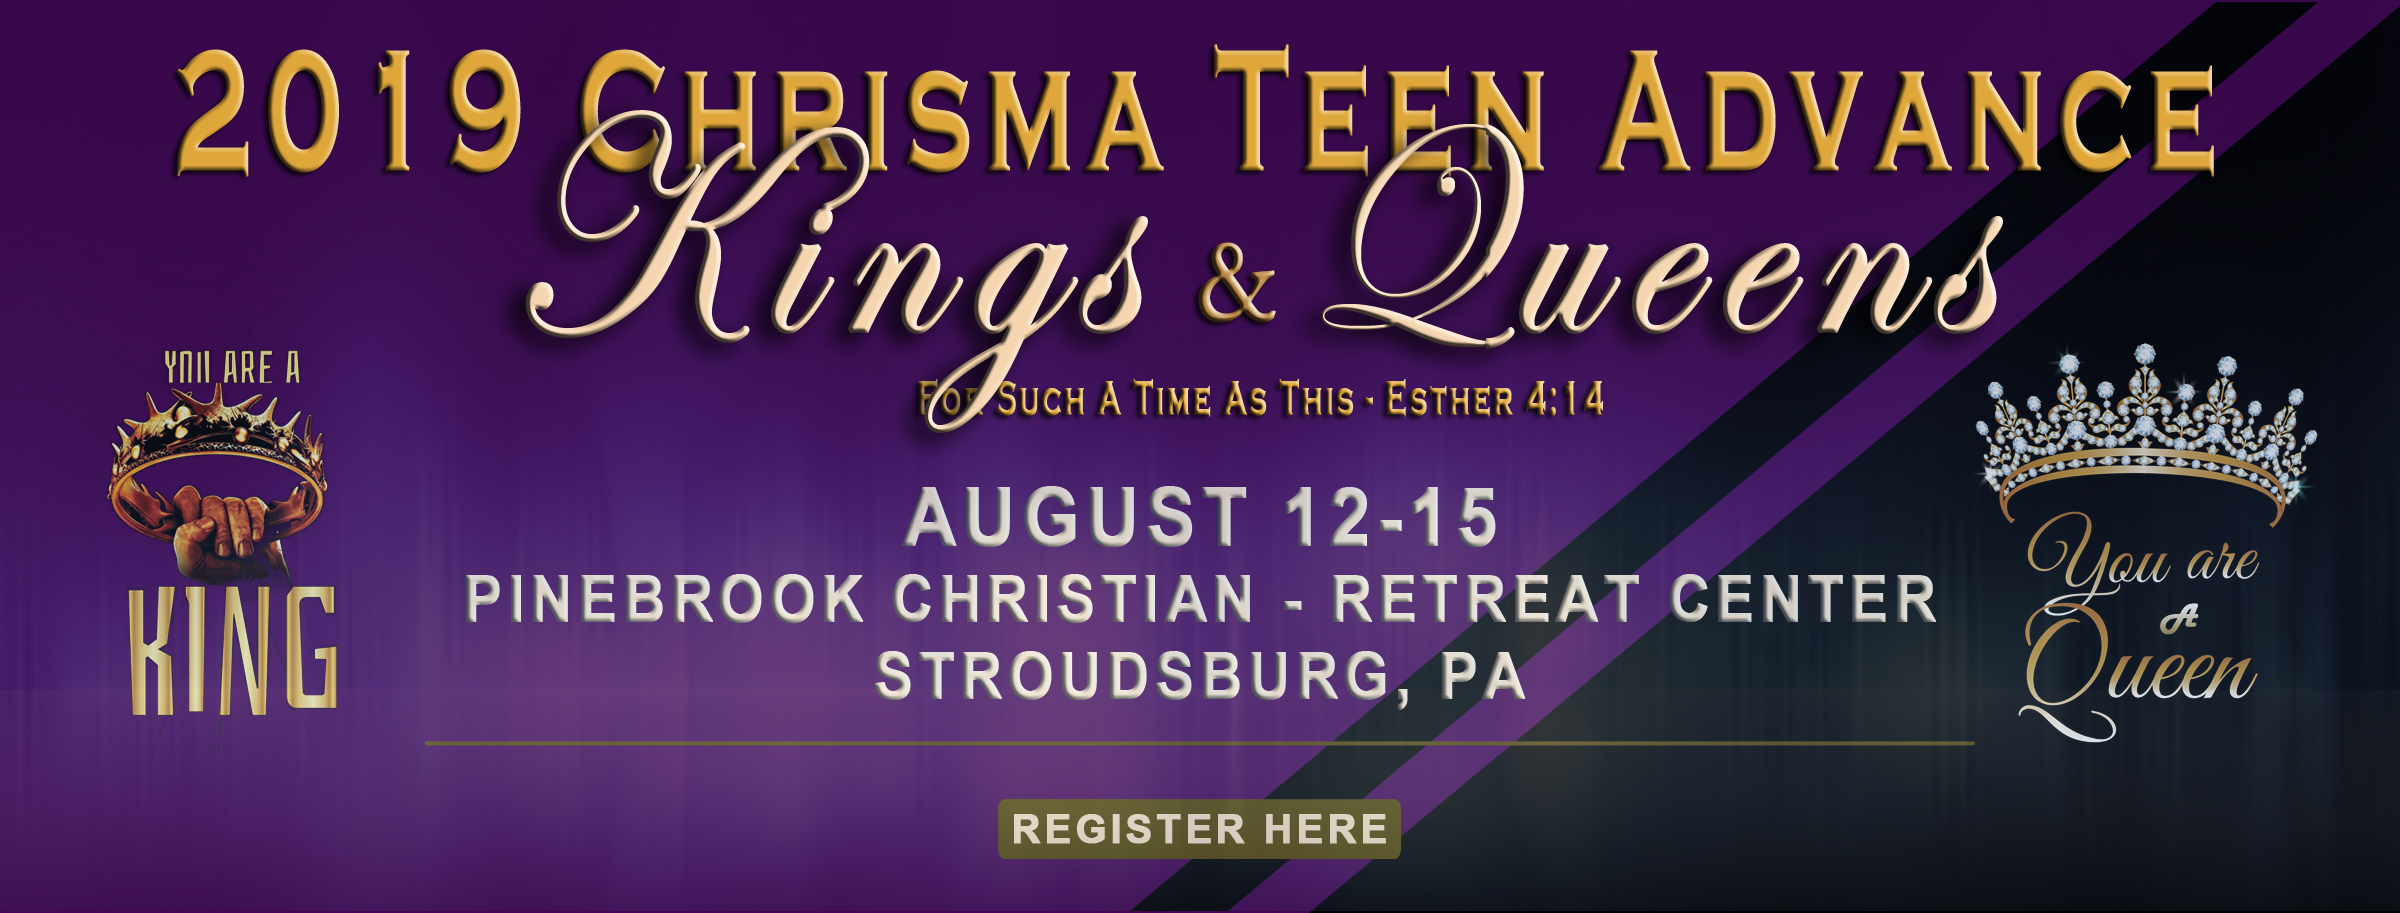 2019 Kings and Queens Chrisma Conference